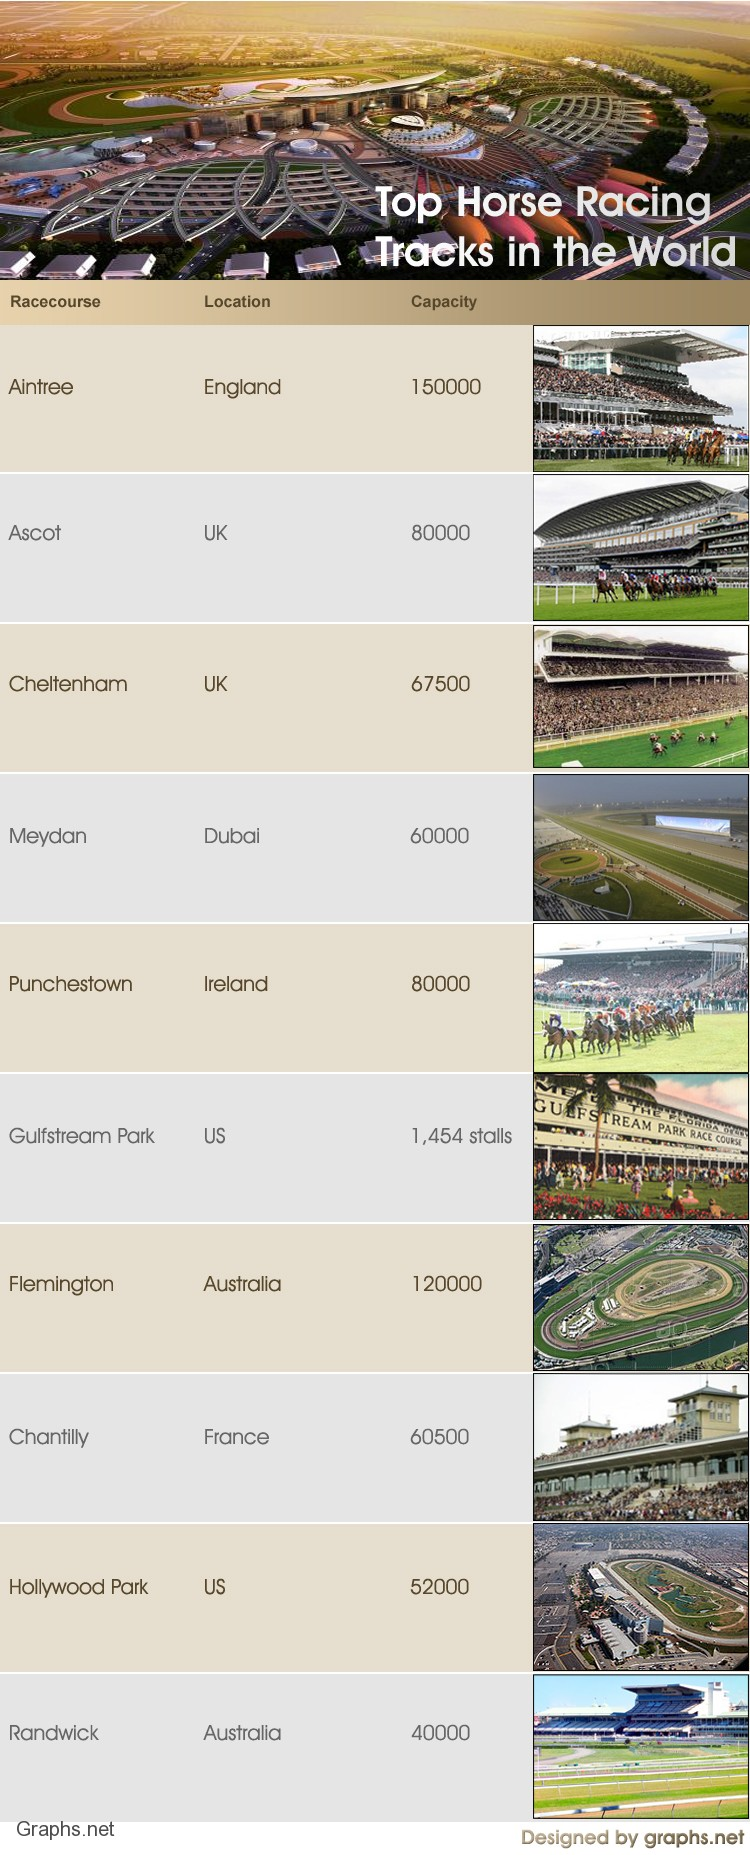 Top Horse Racing Tracks in the World